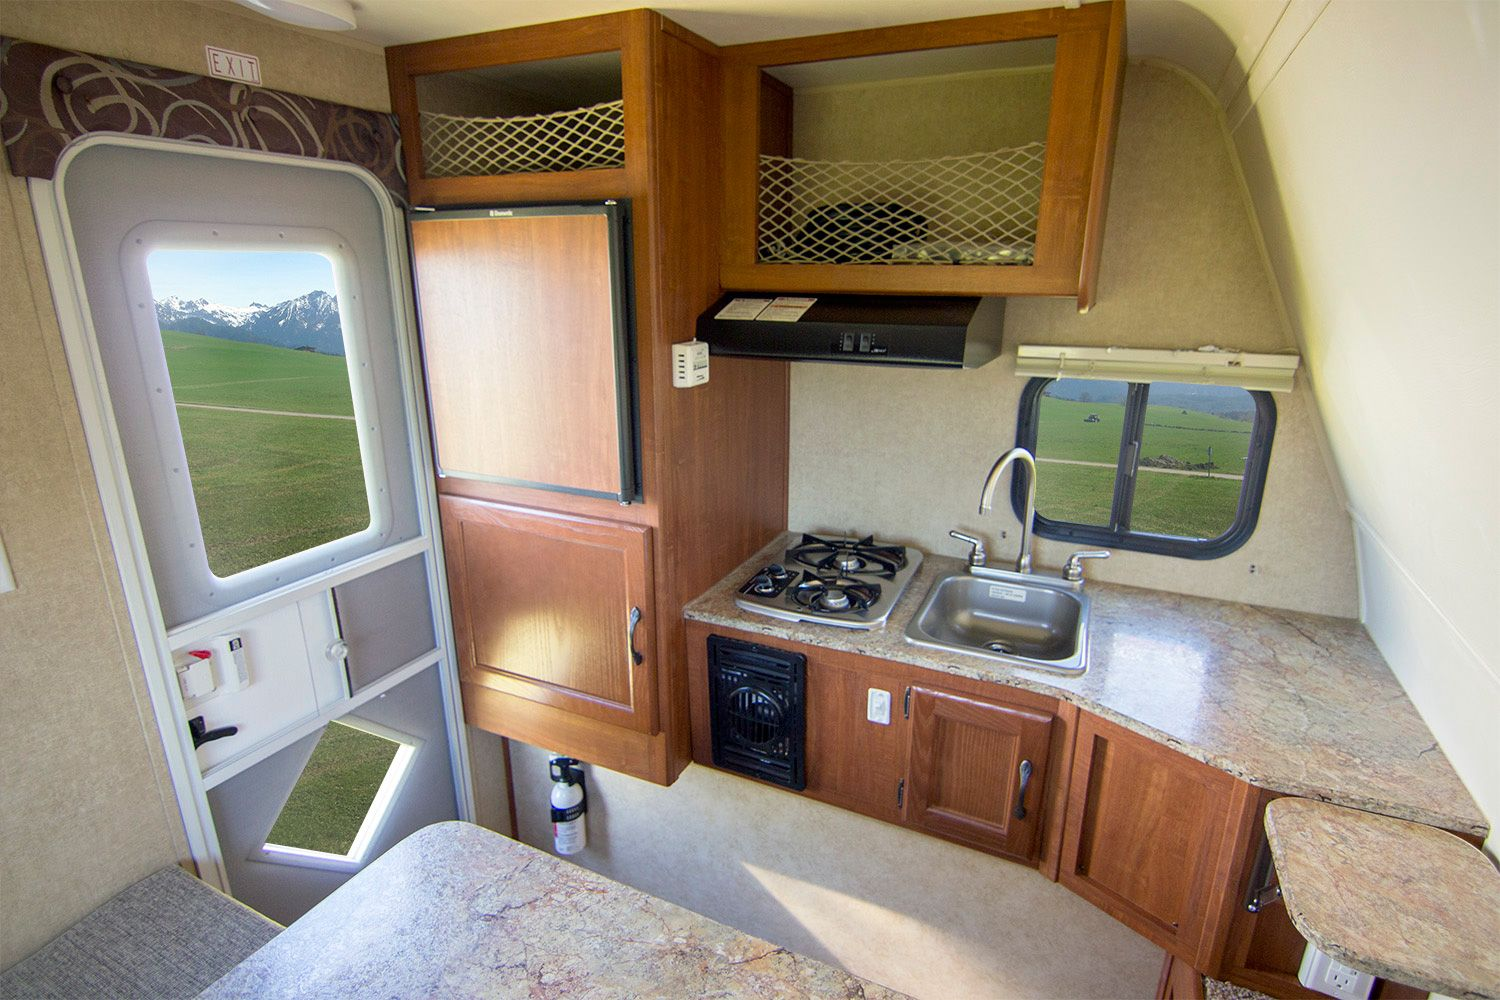 Rayzr Fk Truck Camper Rayzr Campers Home Appliances Dinette Home